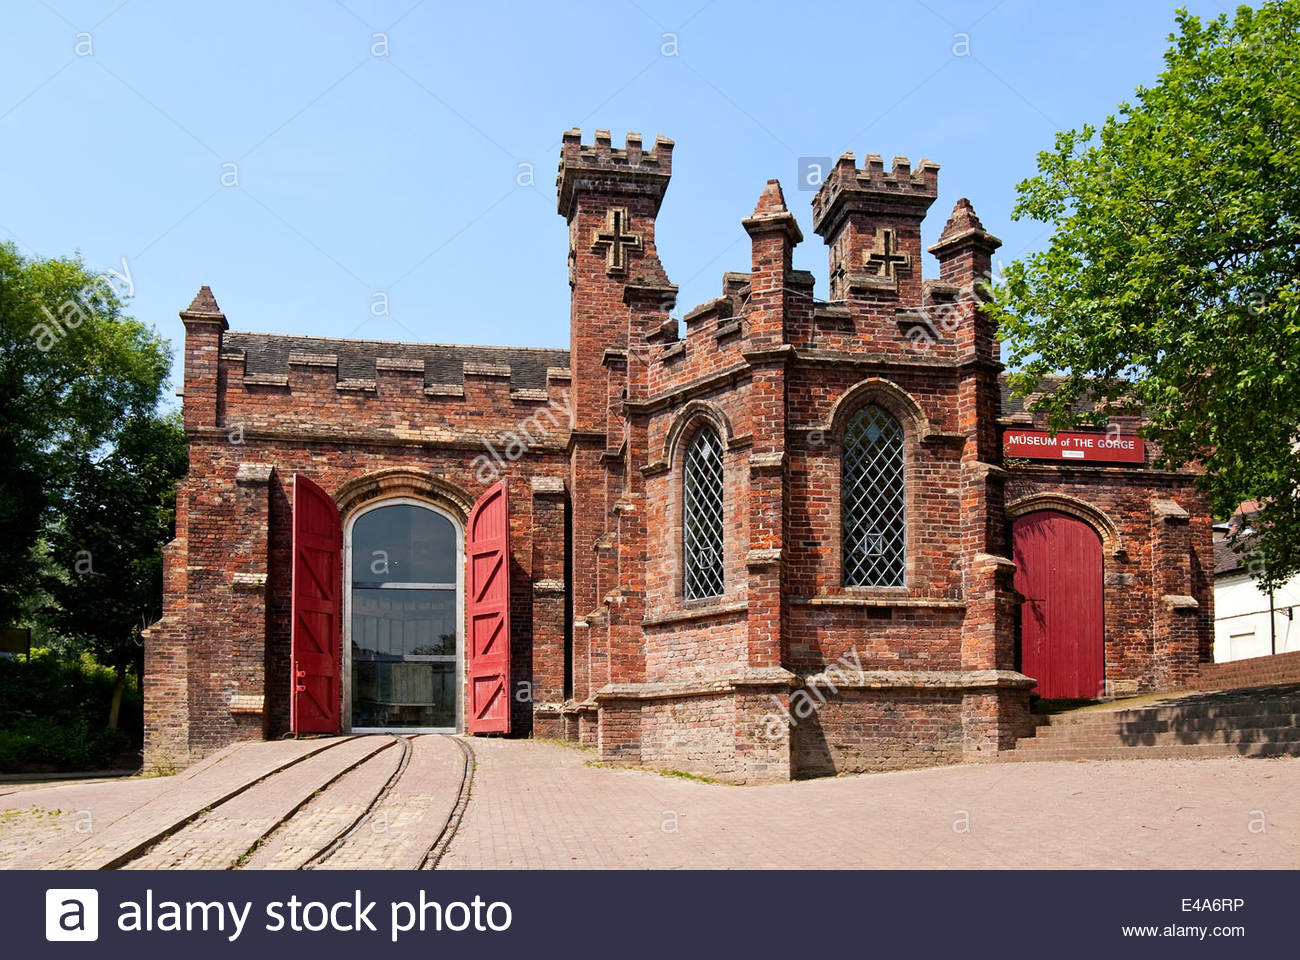 The Museum of the Gorge in Ironbridge, England, provides an introduction to the valley and its attractions. - Stock Image